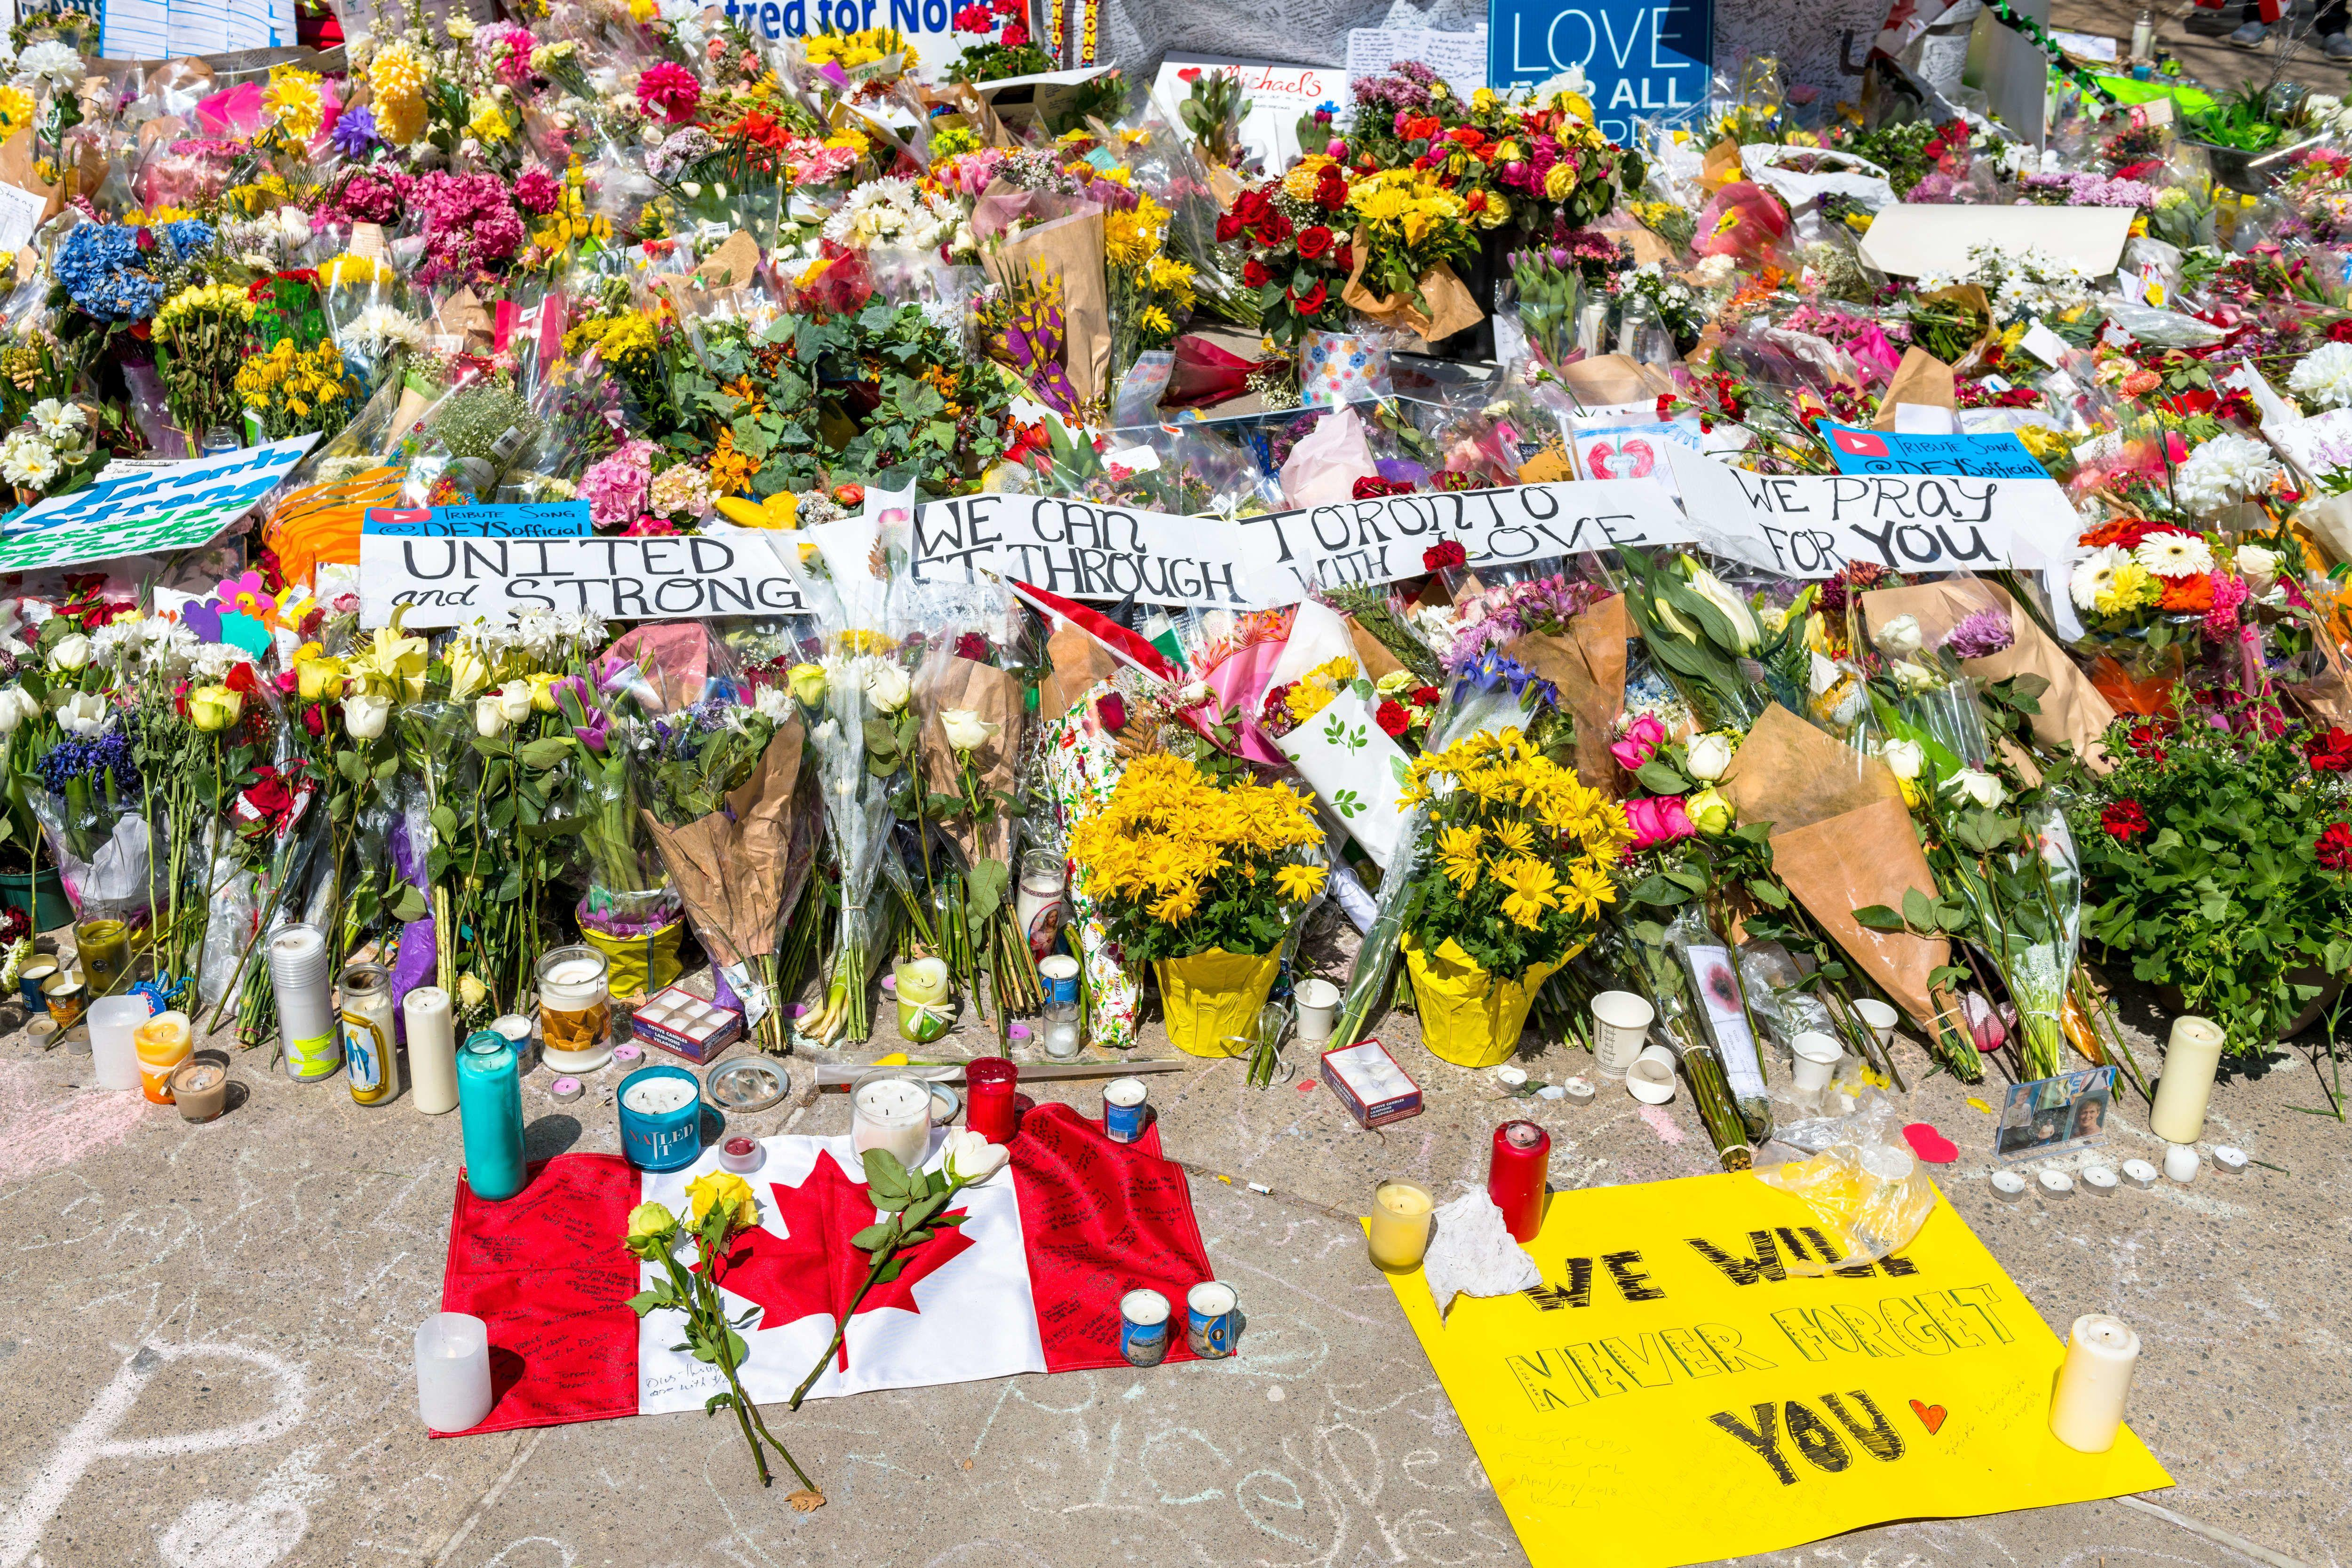 TORONTO, ONTARIO, CANADA - 2018/04/30: Toronto Van Attack a week later: wide angle and aerial view of the memorial in Mel Lastman square. There is a Canadian flag at the front. (Photo by Roberto Machado Noa/LightRocket via Getty Images)